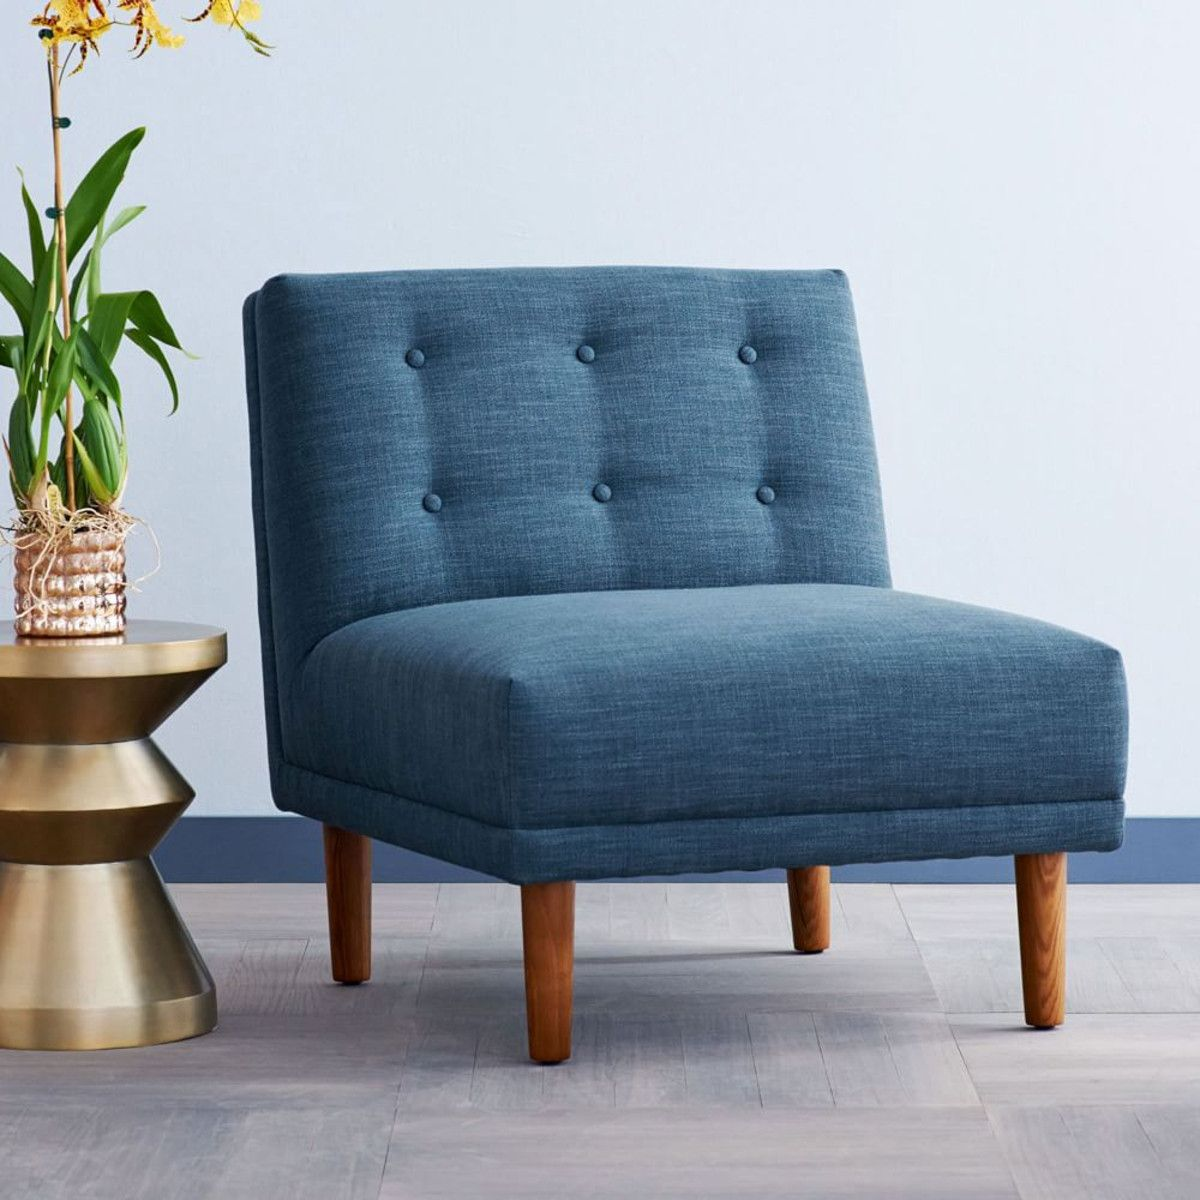 Rounded Retro Armless Chair perfect to fit into a small